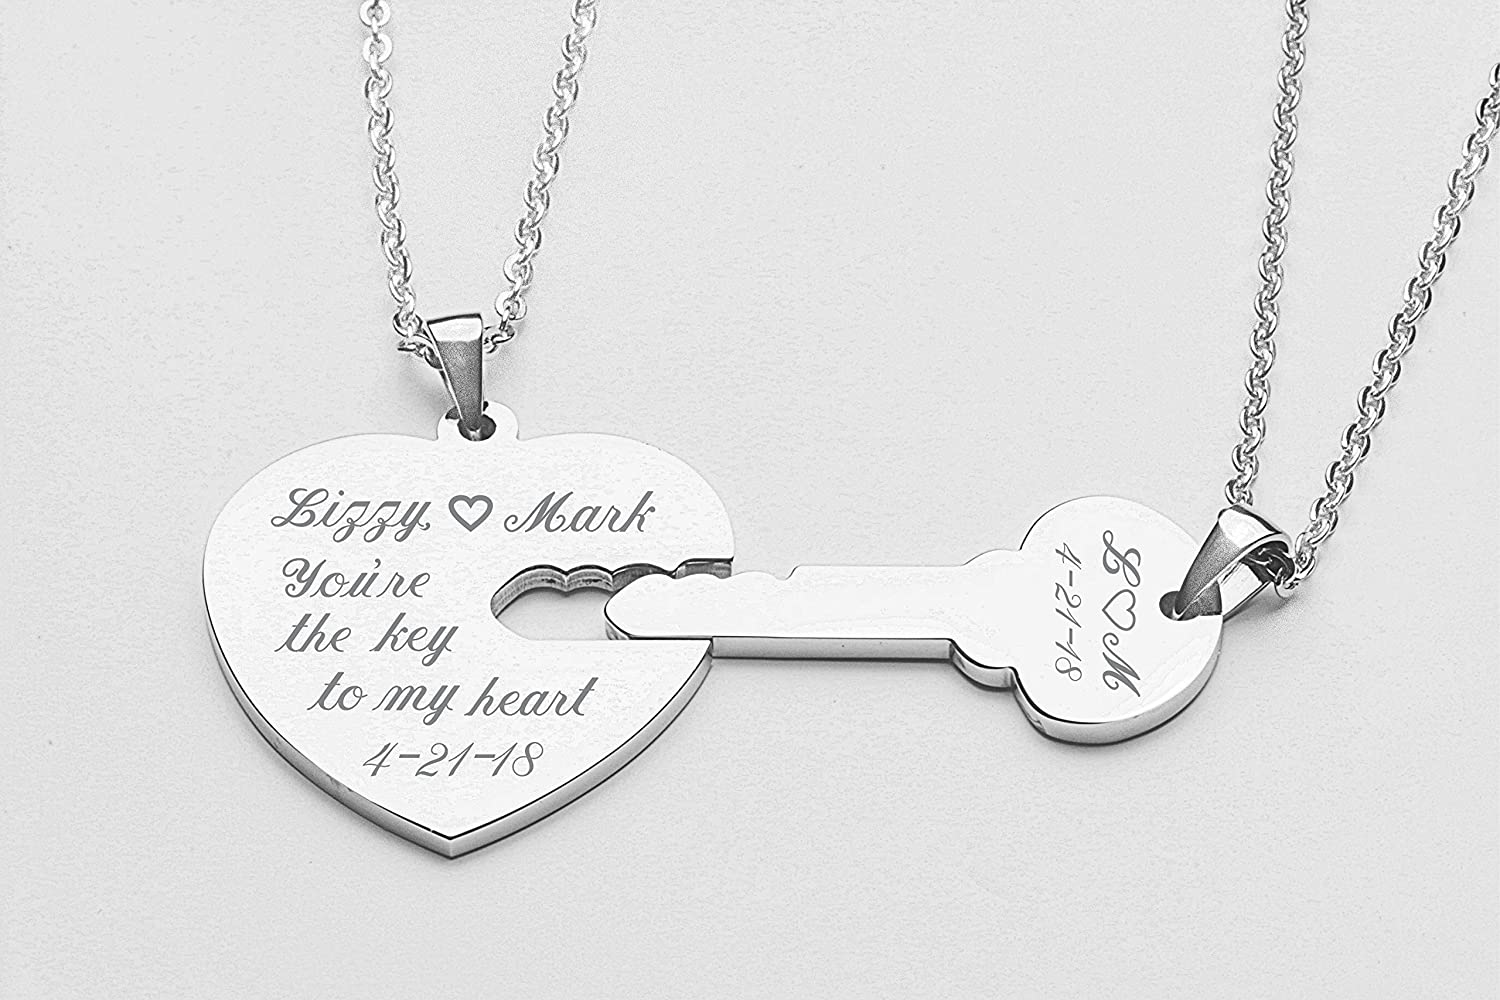 3b6e9867a91a2 Personalized Silver Heart & Key Necklace Set